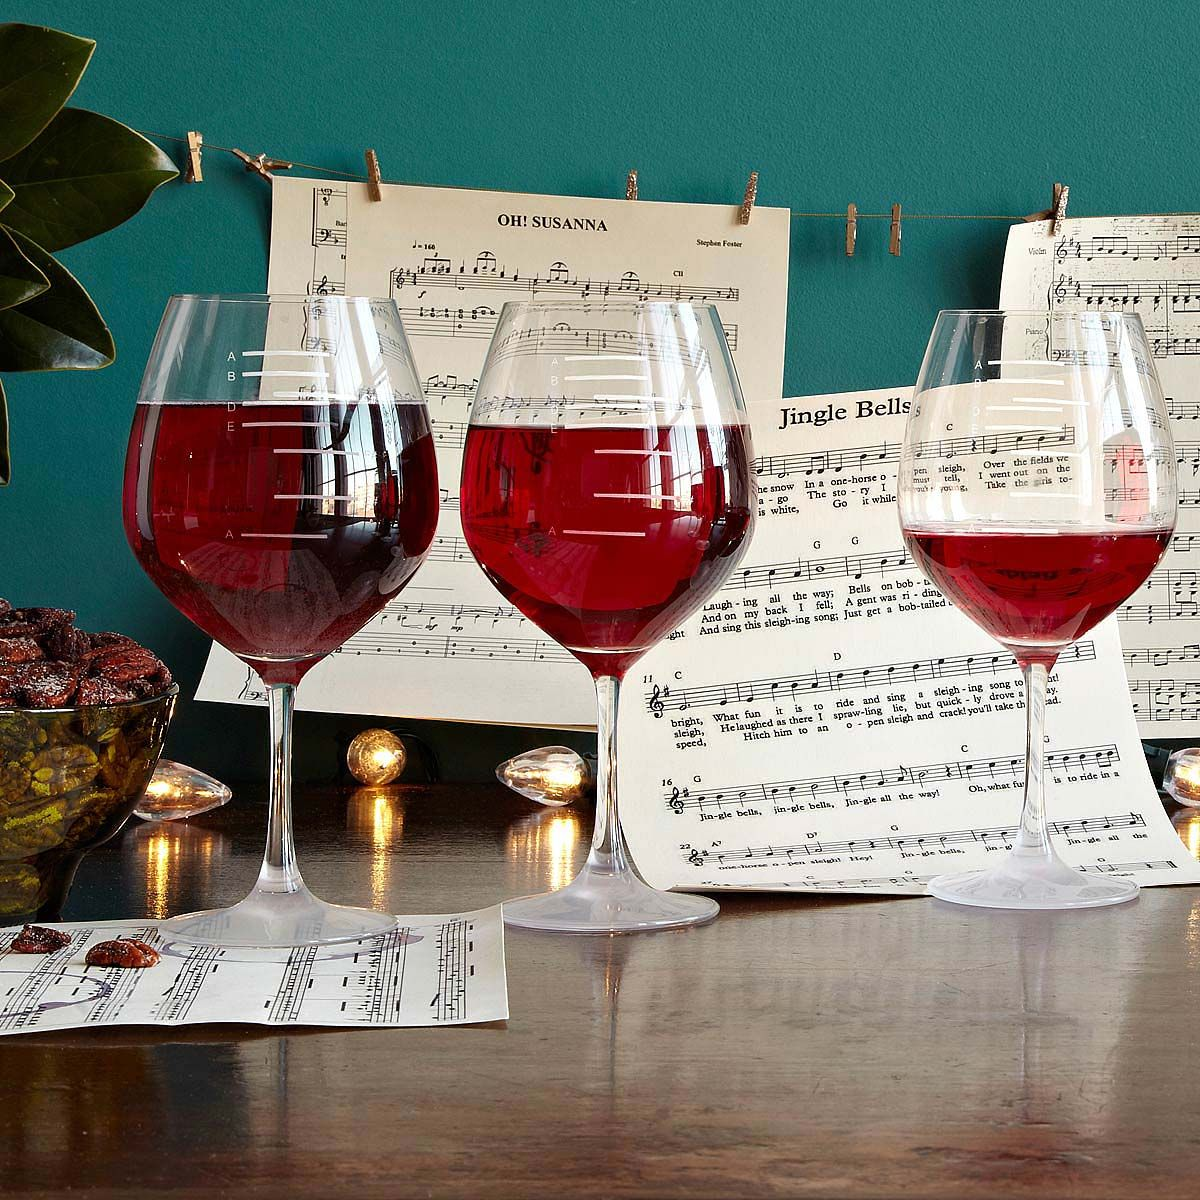 Major Scale Musical Wine Glasses Party Set Etched Wine Glasses Music Etched Wine Glasses Wine Wine Glasses